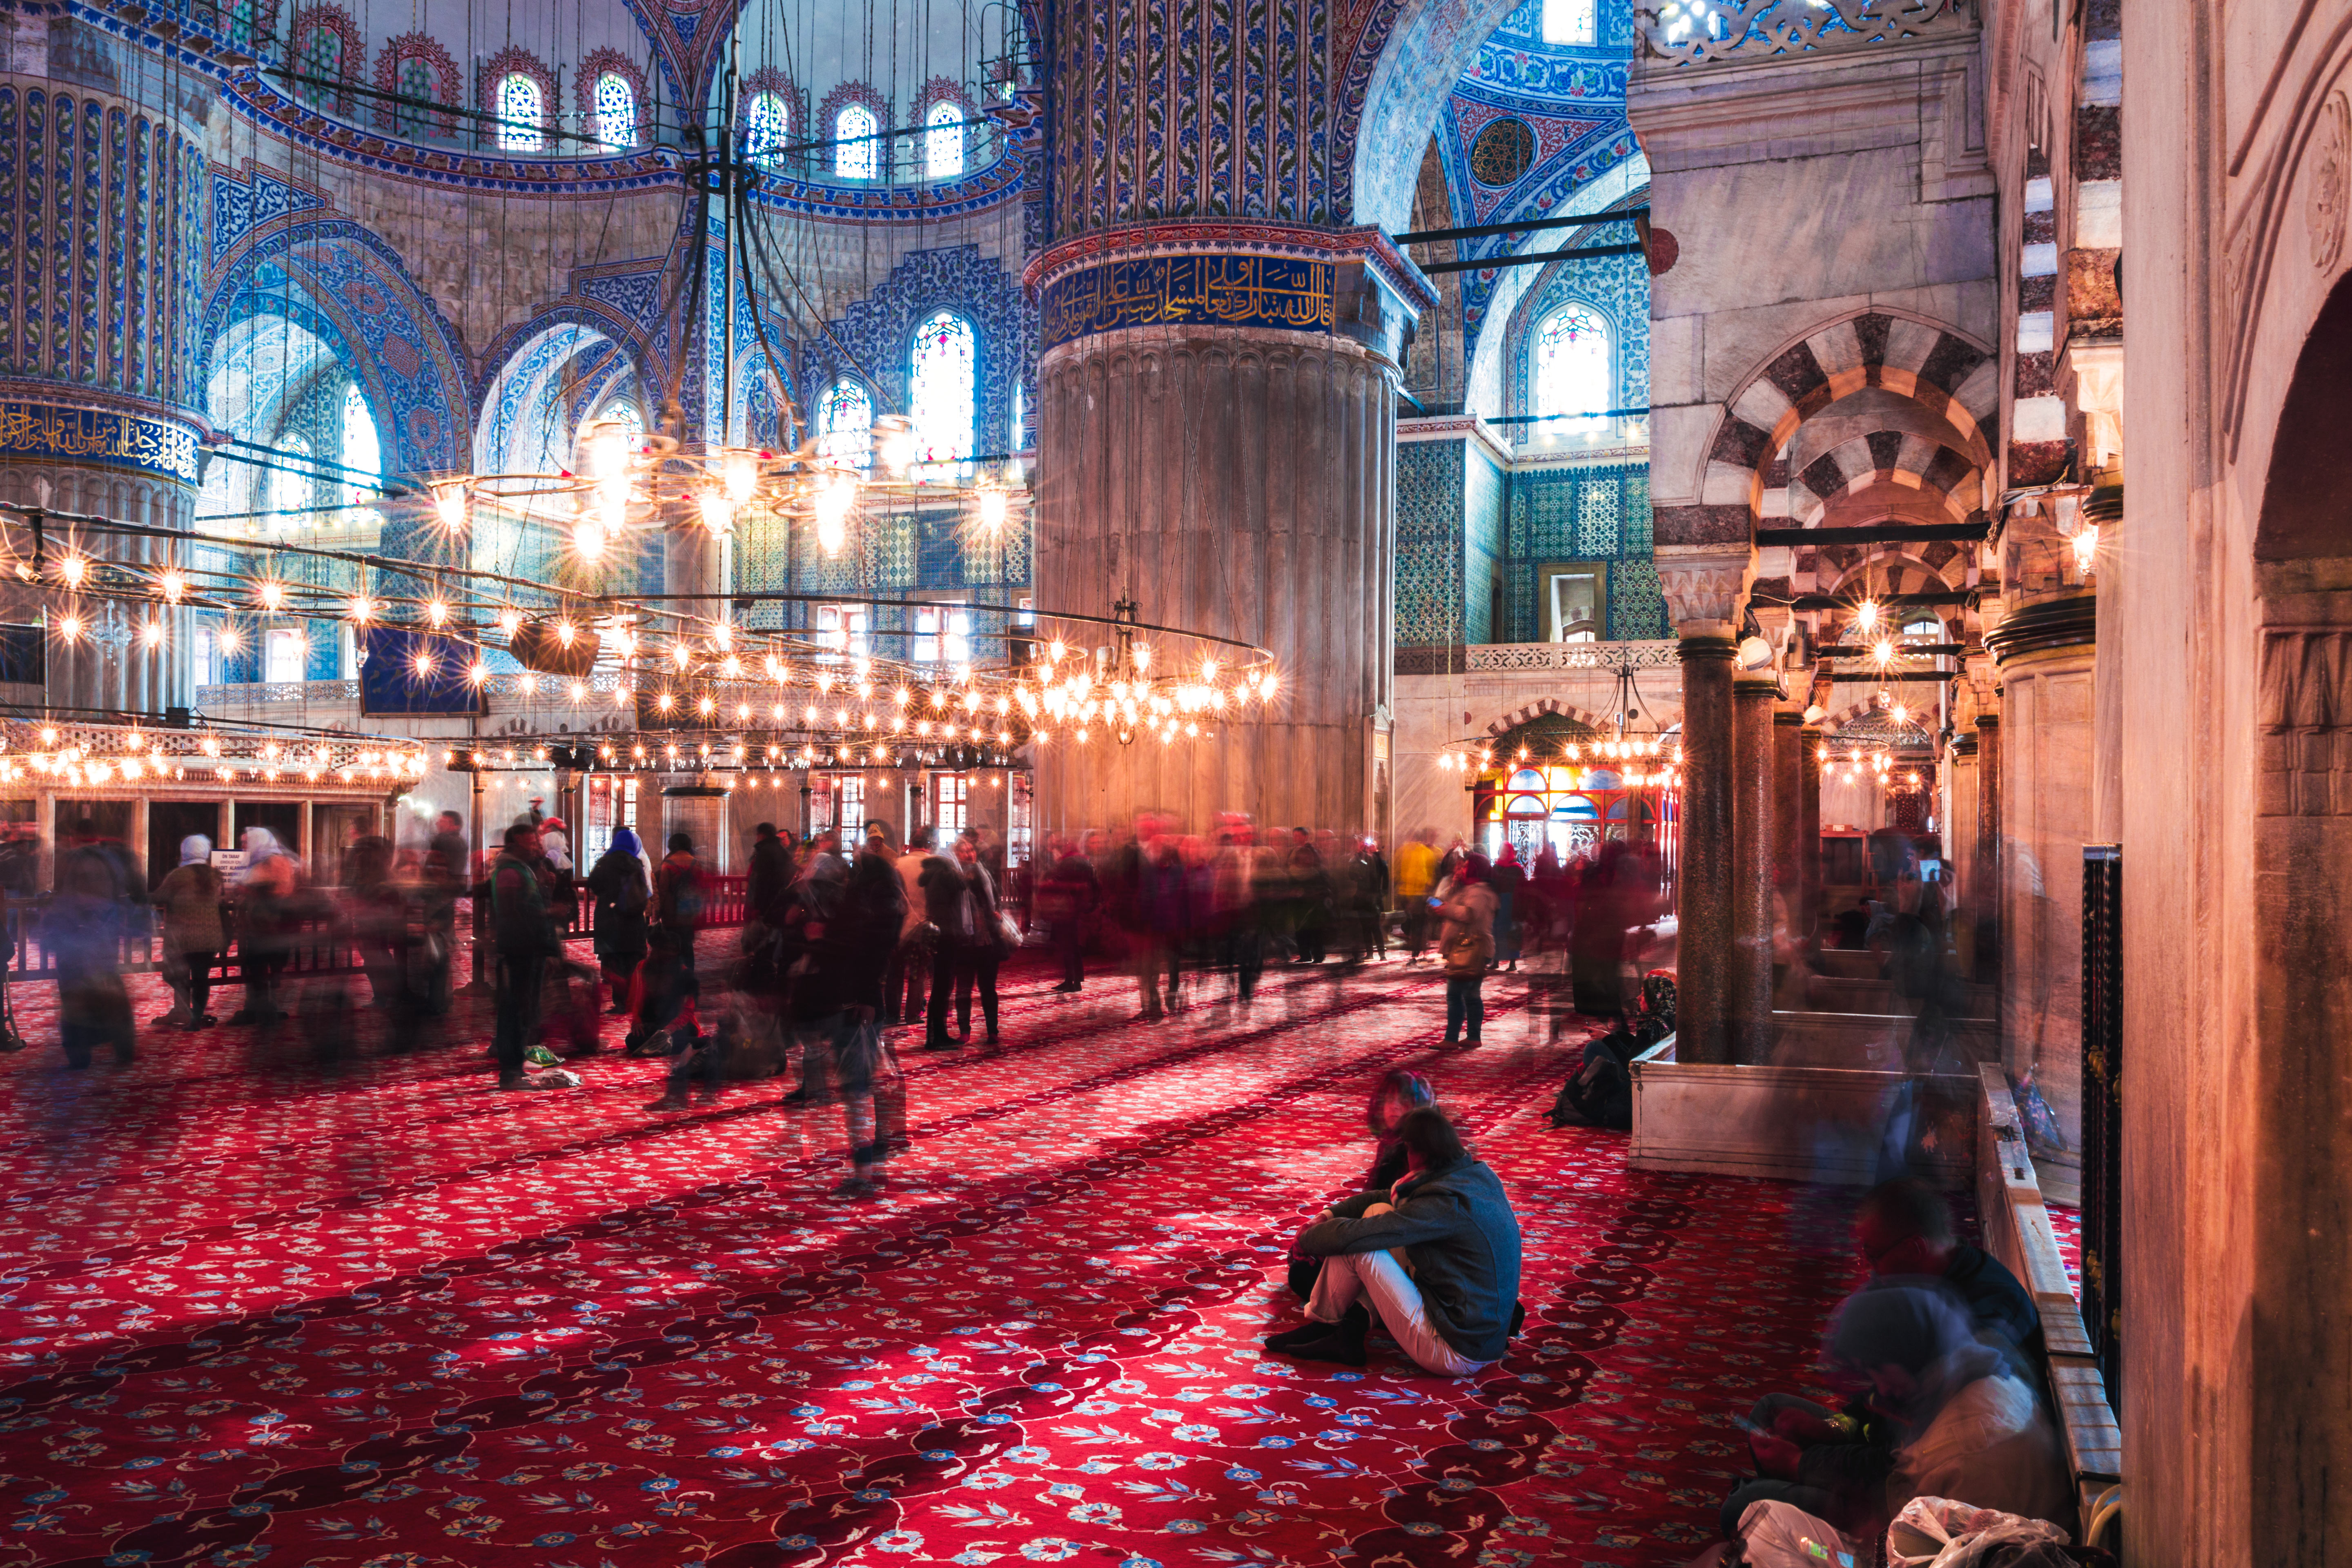 Inside the breathtaking Blue Mosque.